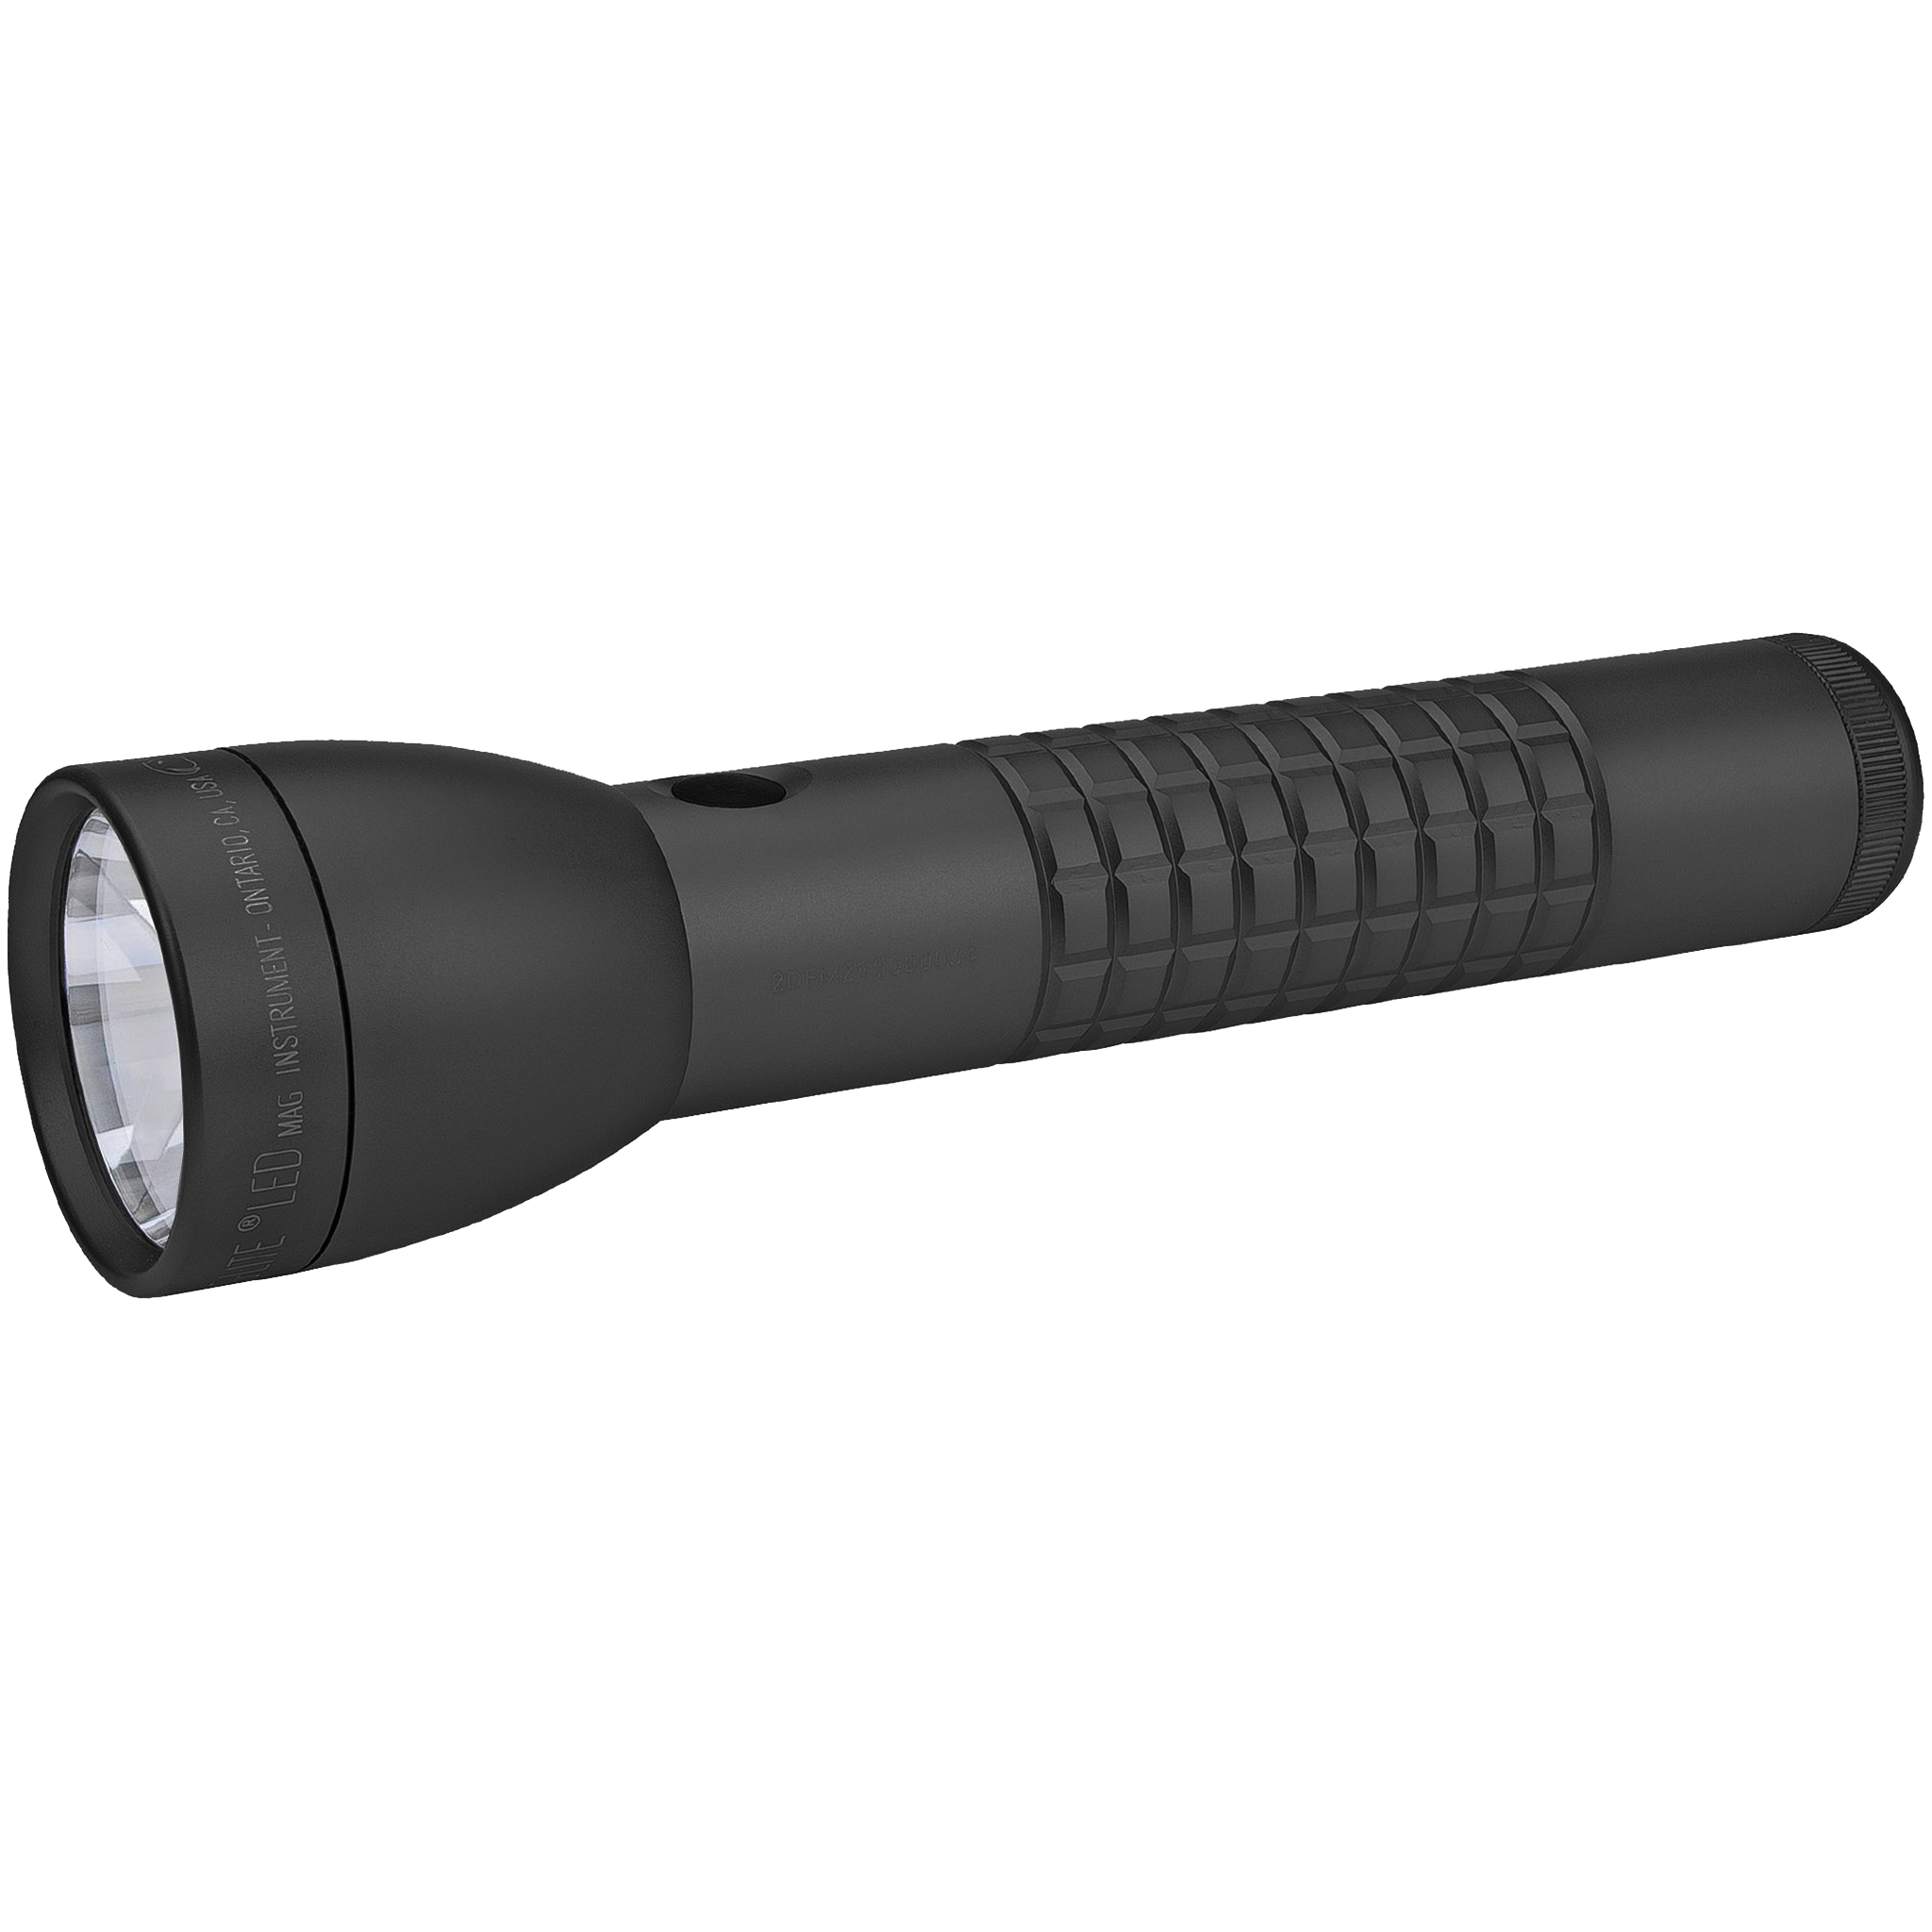 maglite ml50lx 490 lumens multi mode quickclik 2 cell led. Black Bedroom Furniture Sets. Home Design Ideas